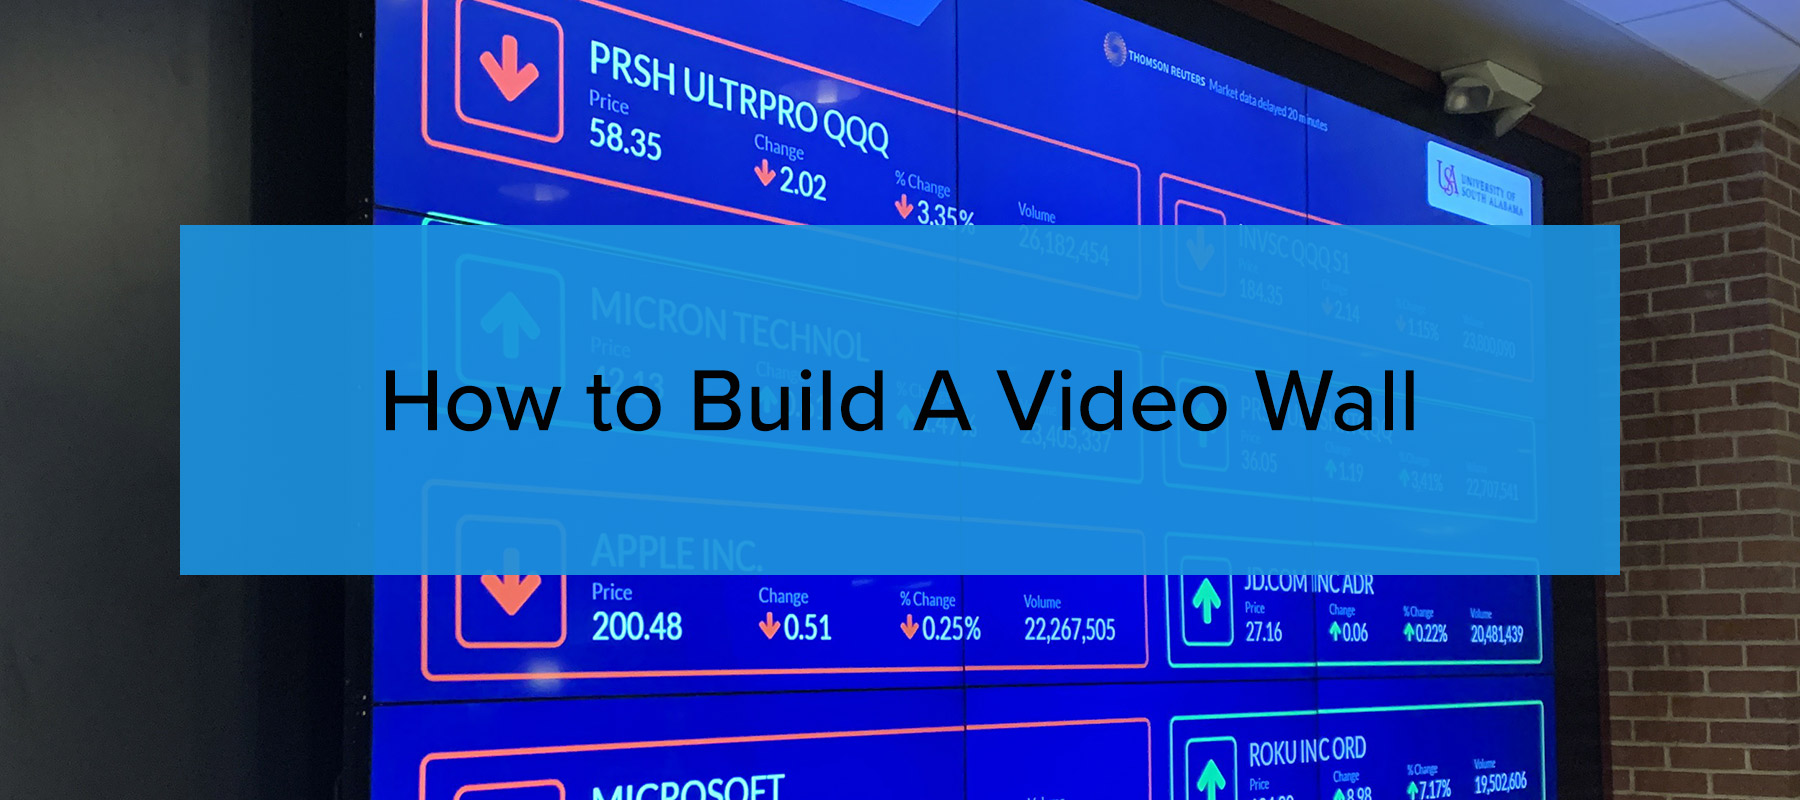 How to build a video wall